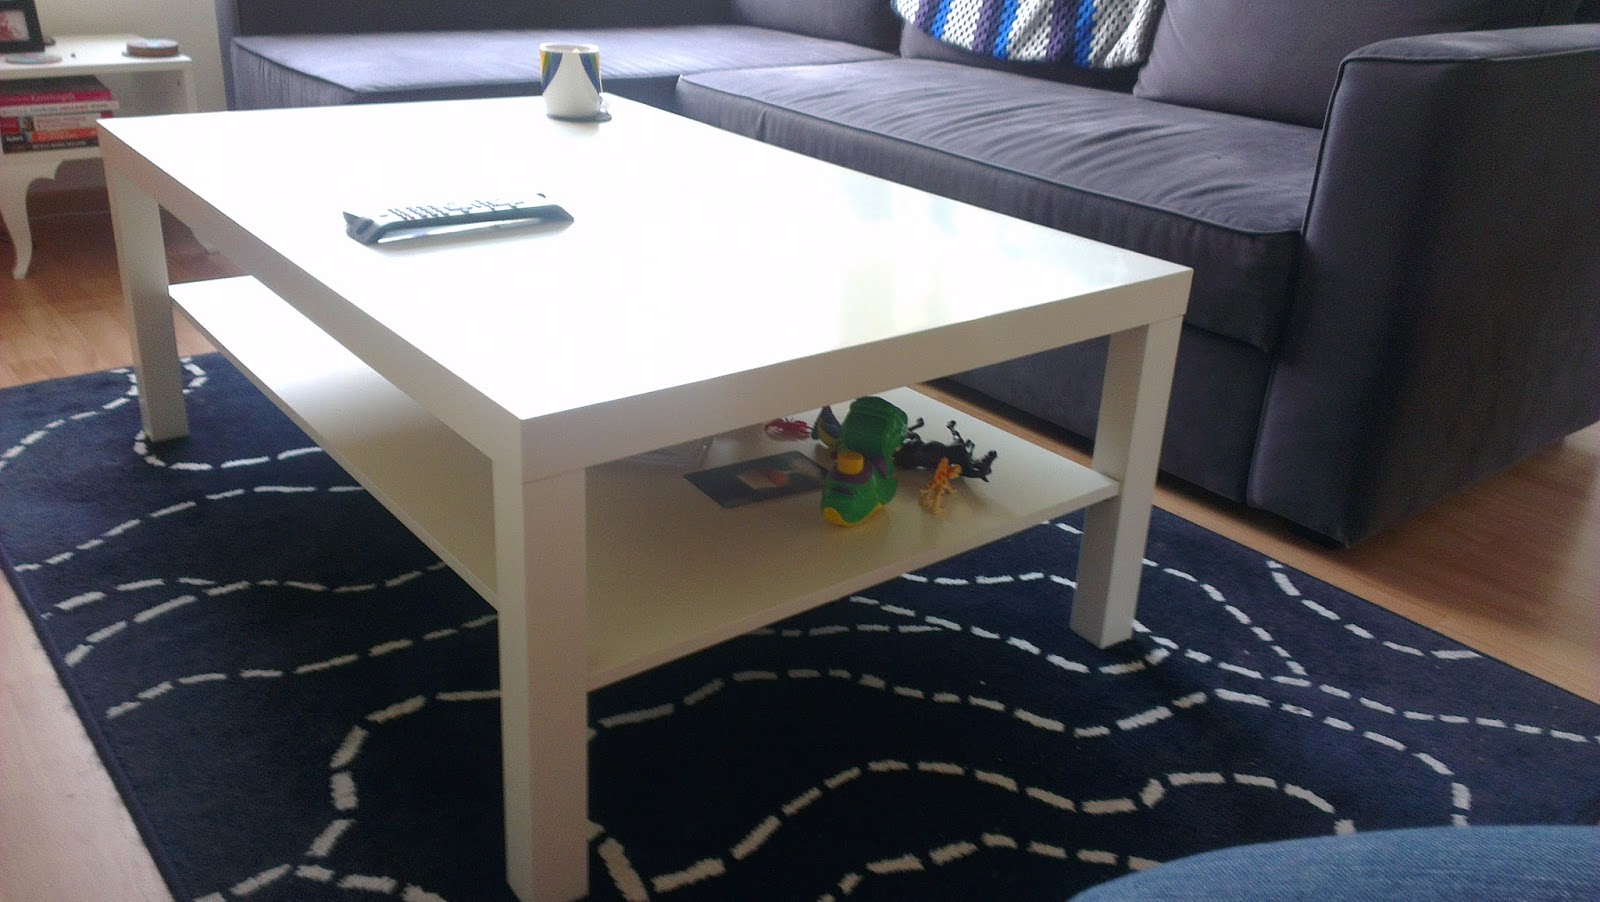 Ace the Adventure: IKEA Vrijdag: Lack Salontafel/Coffee Table